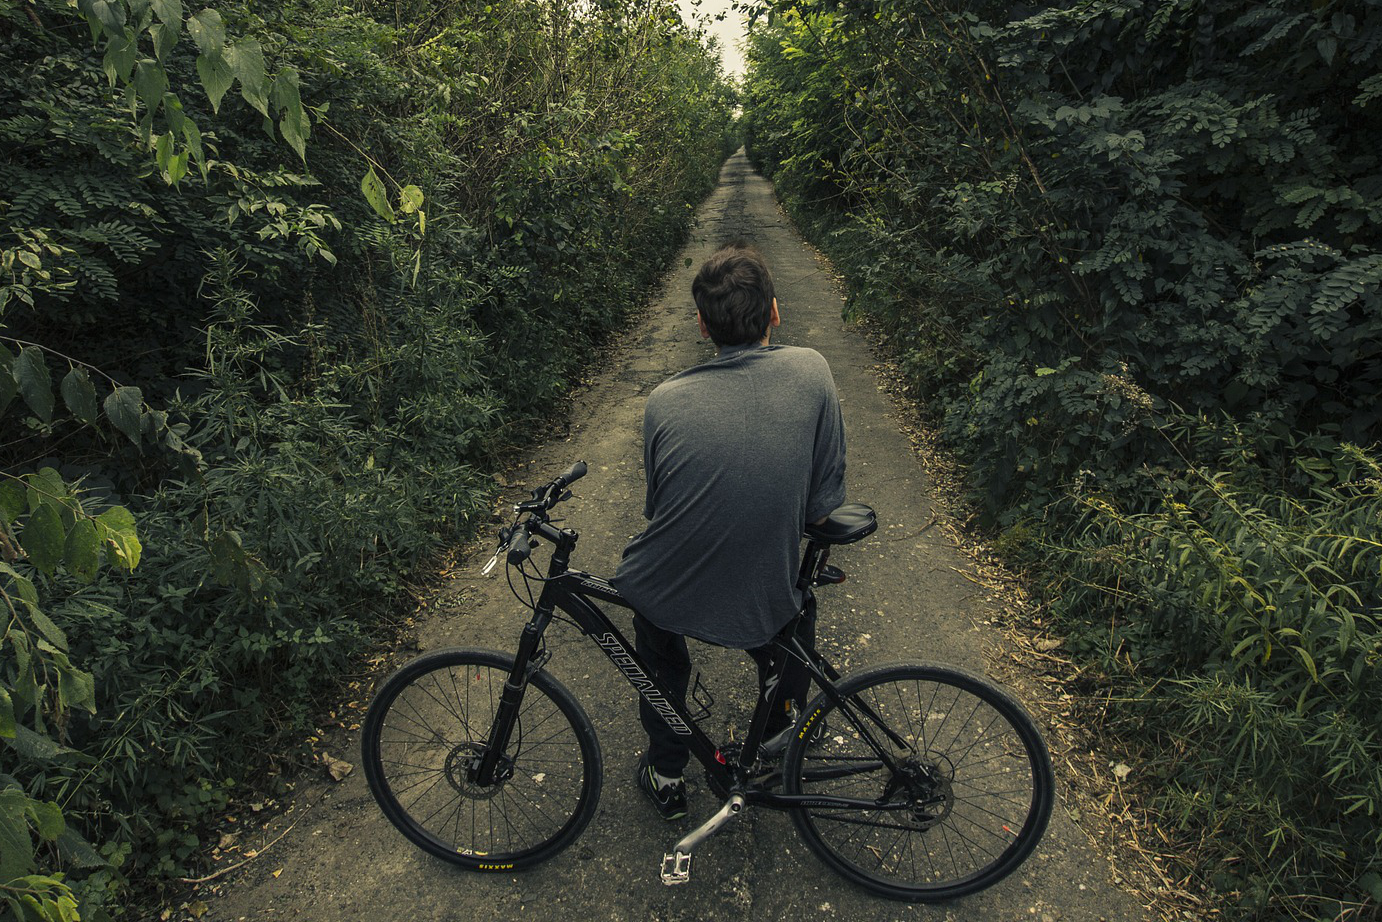 mountain bike with road tires on path